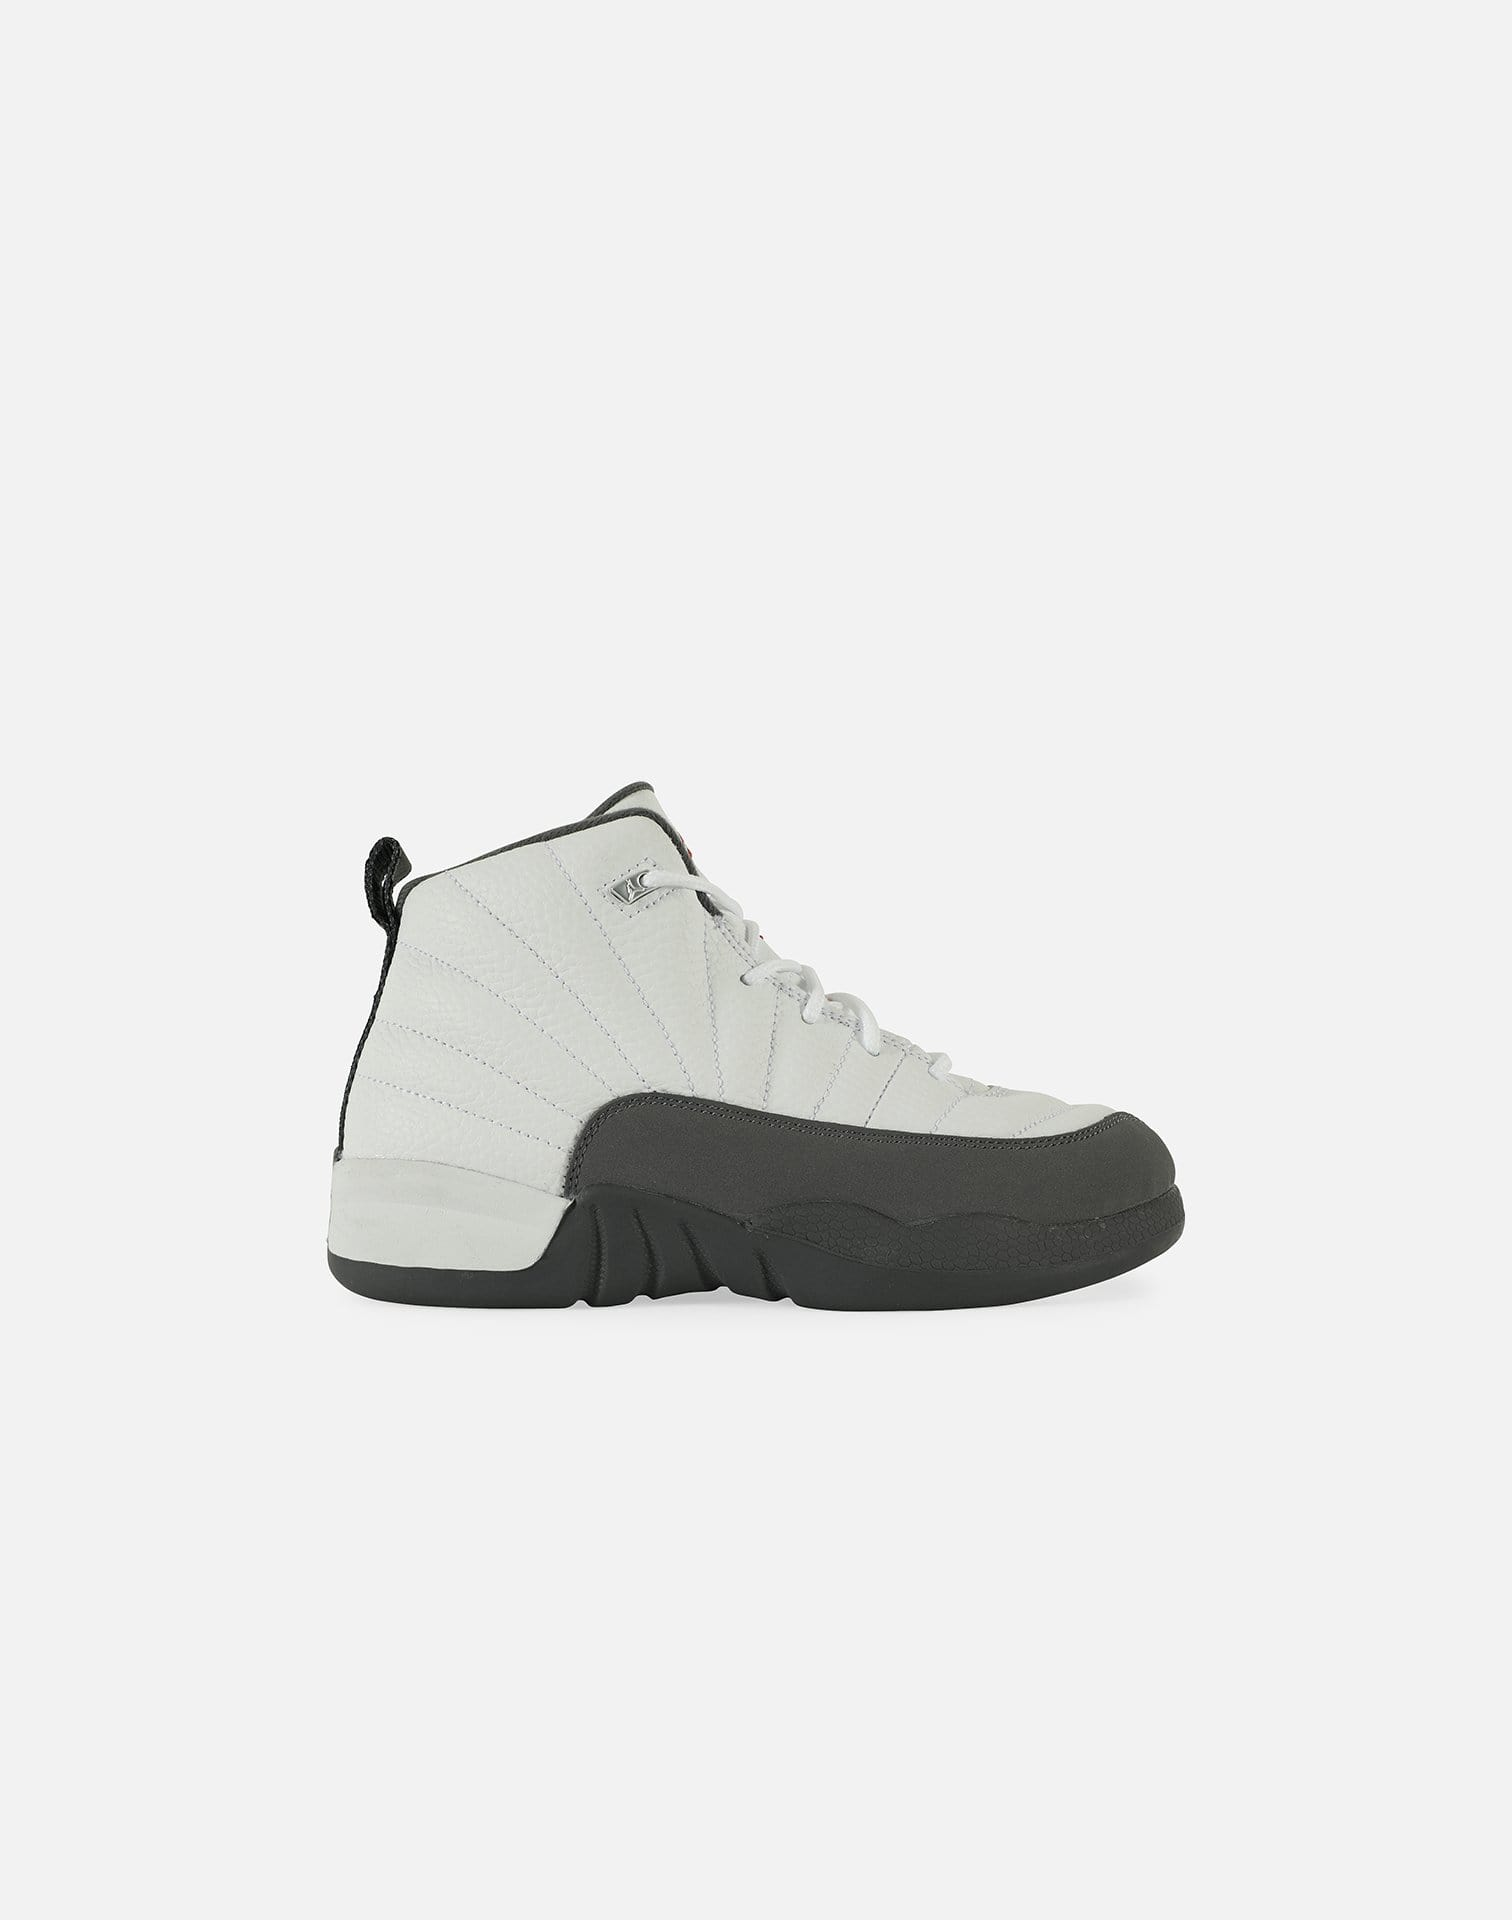 Jordan AIR JORDAN RETRO 12 'DARK GREY' PRE-SCHOOL